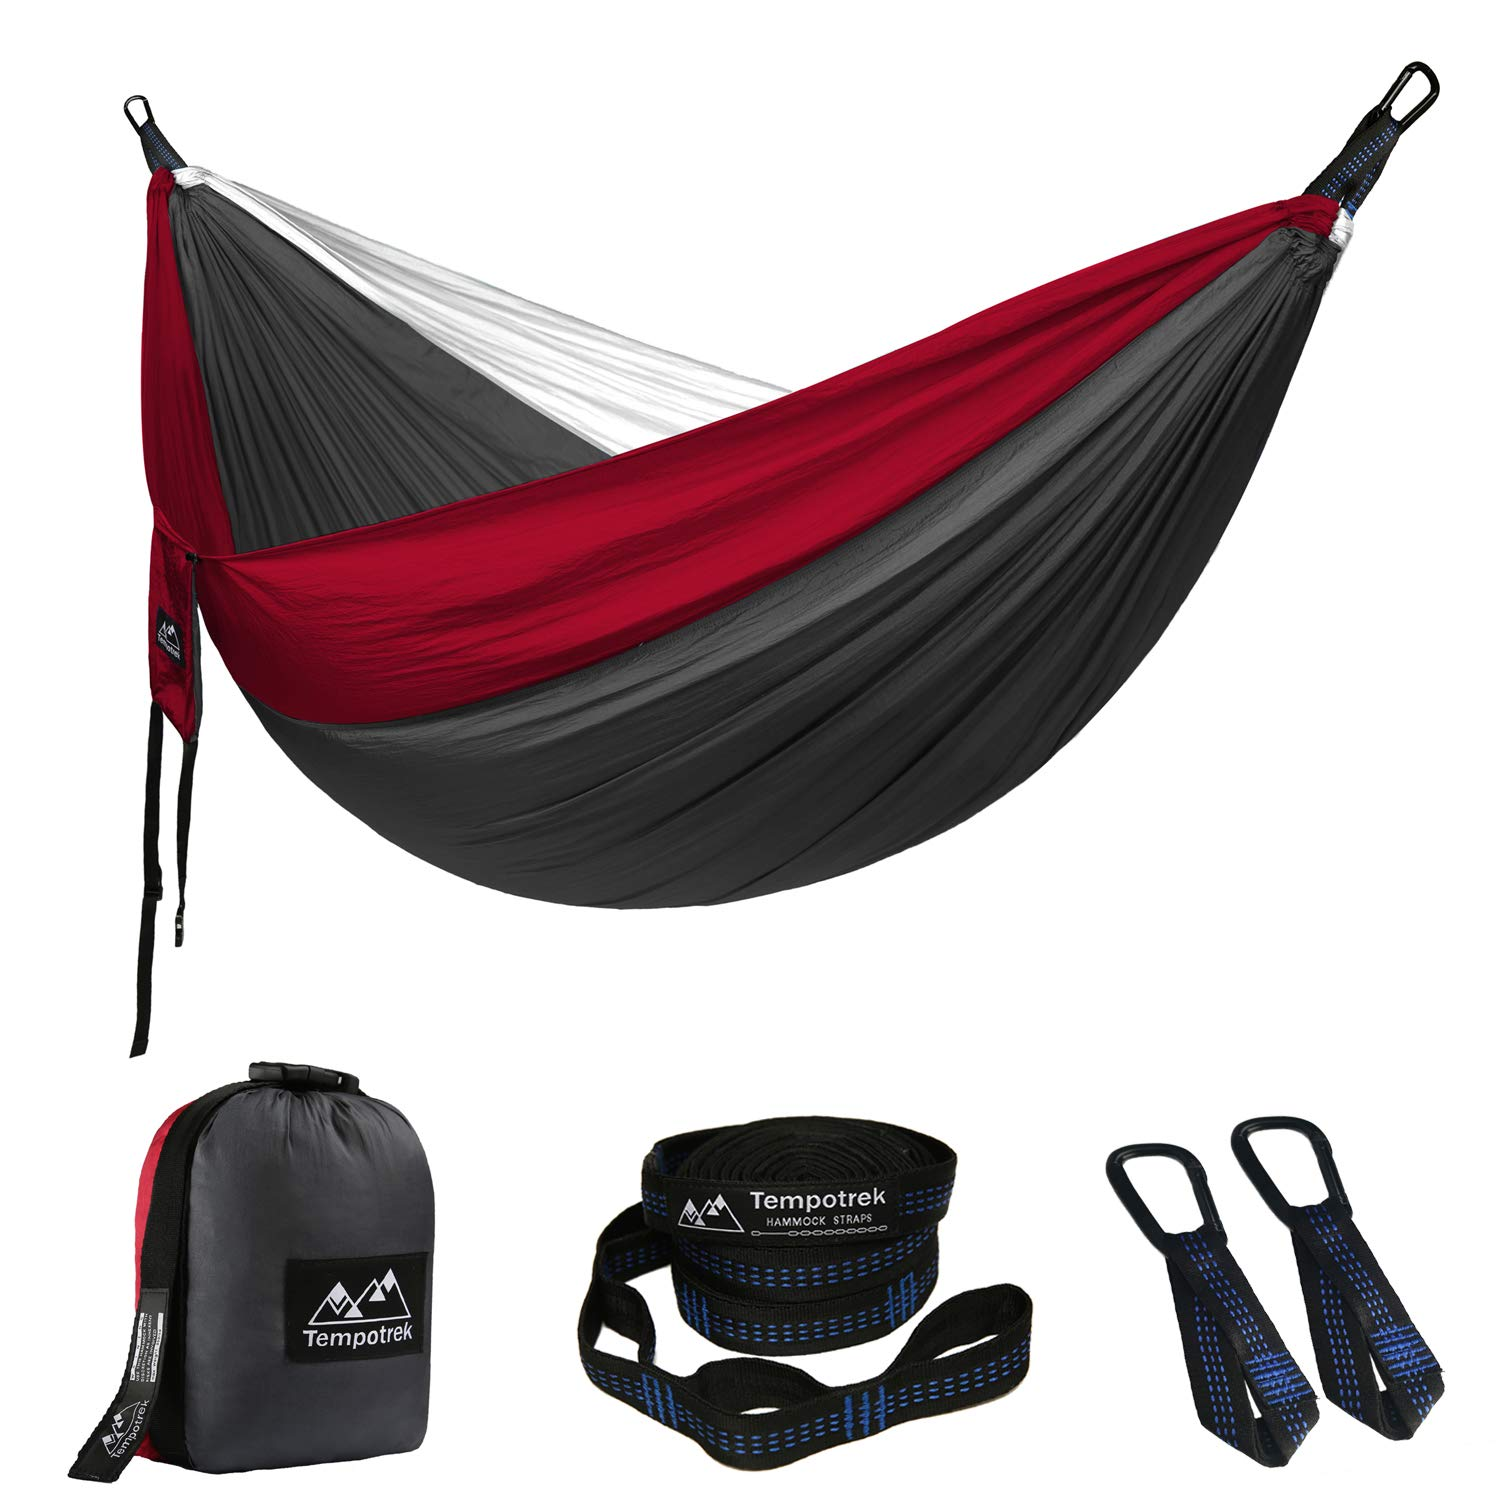 Tempotrek Double Camping Hammock -Best Parachute Hammock Travel Lightweight Nylon Portable Hammock for Backpacking Yard 118 800LB High Capacity x 78 L Beach W